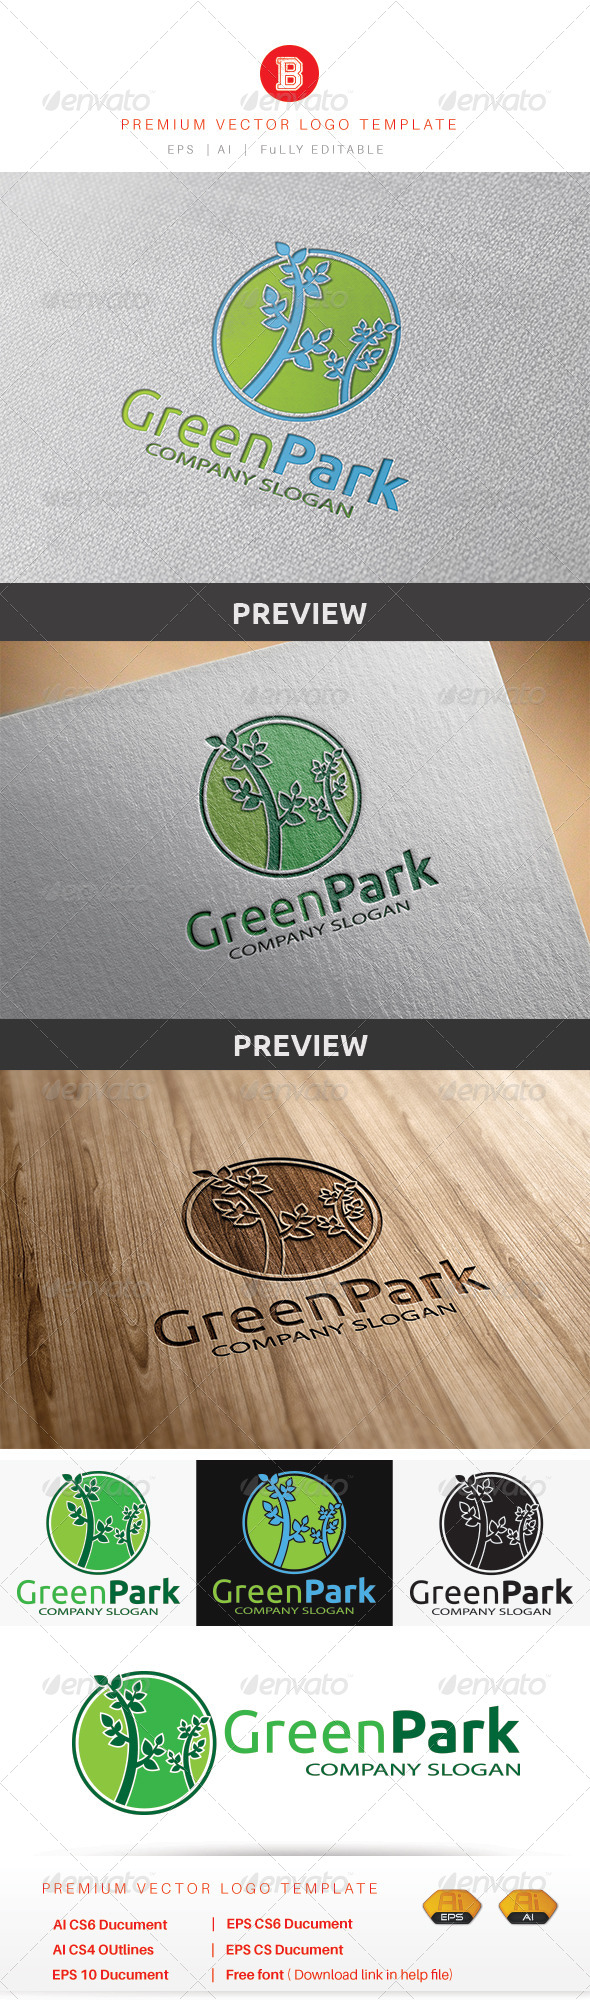 GraphicRiver Green Park 8549777